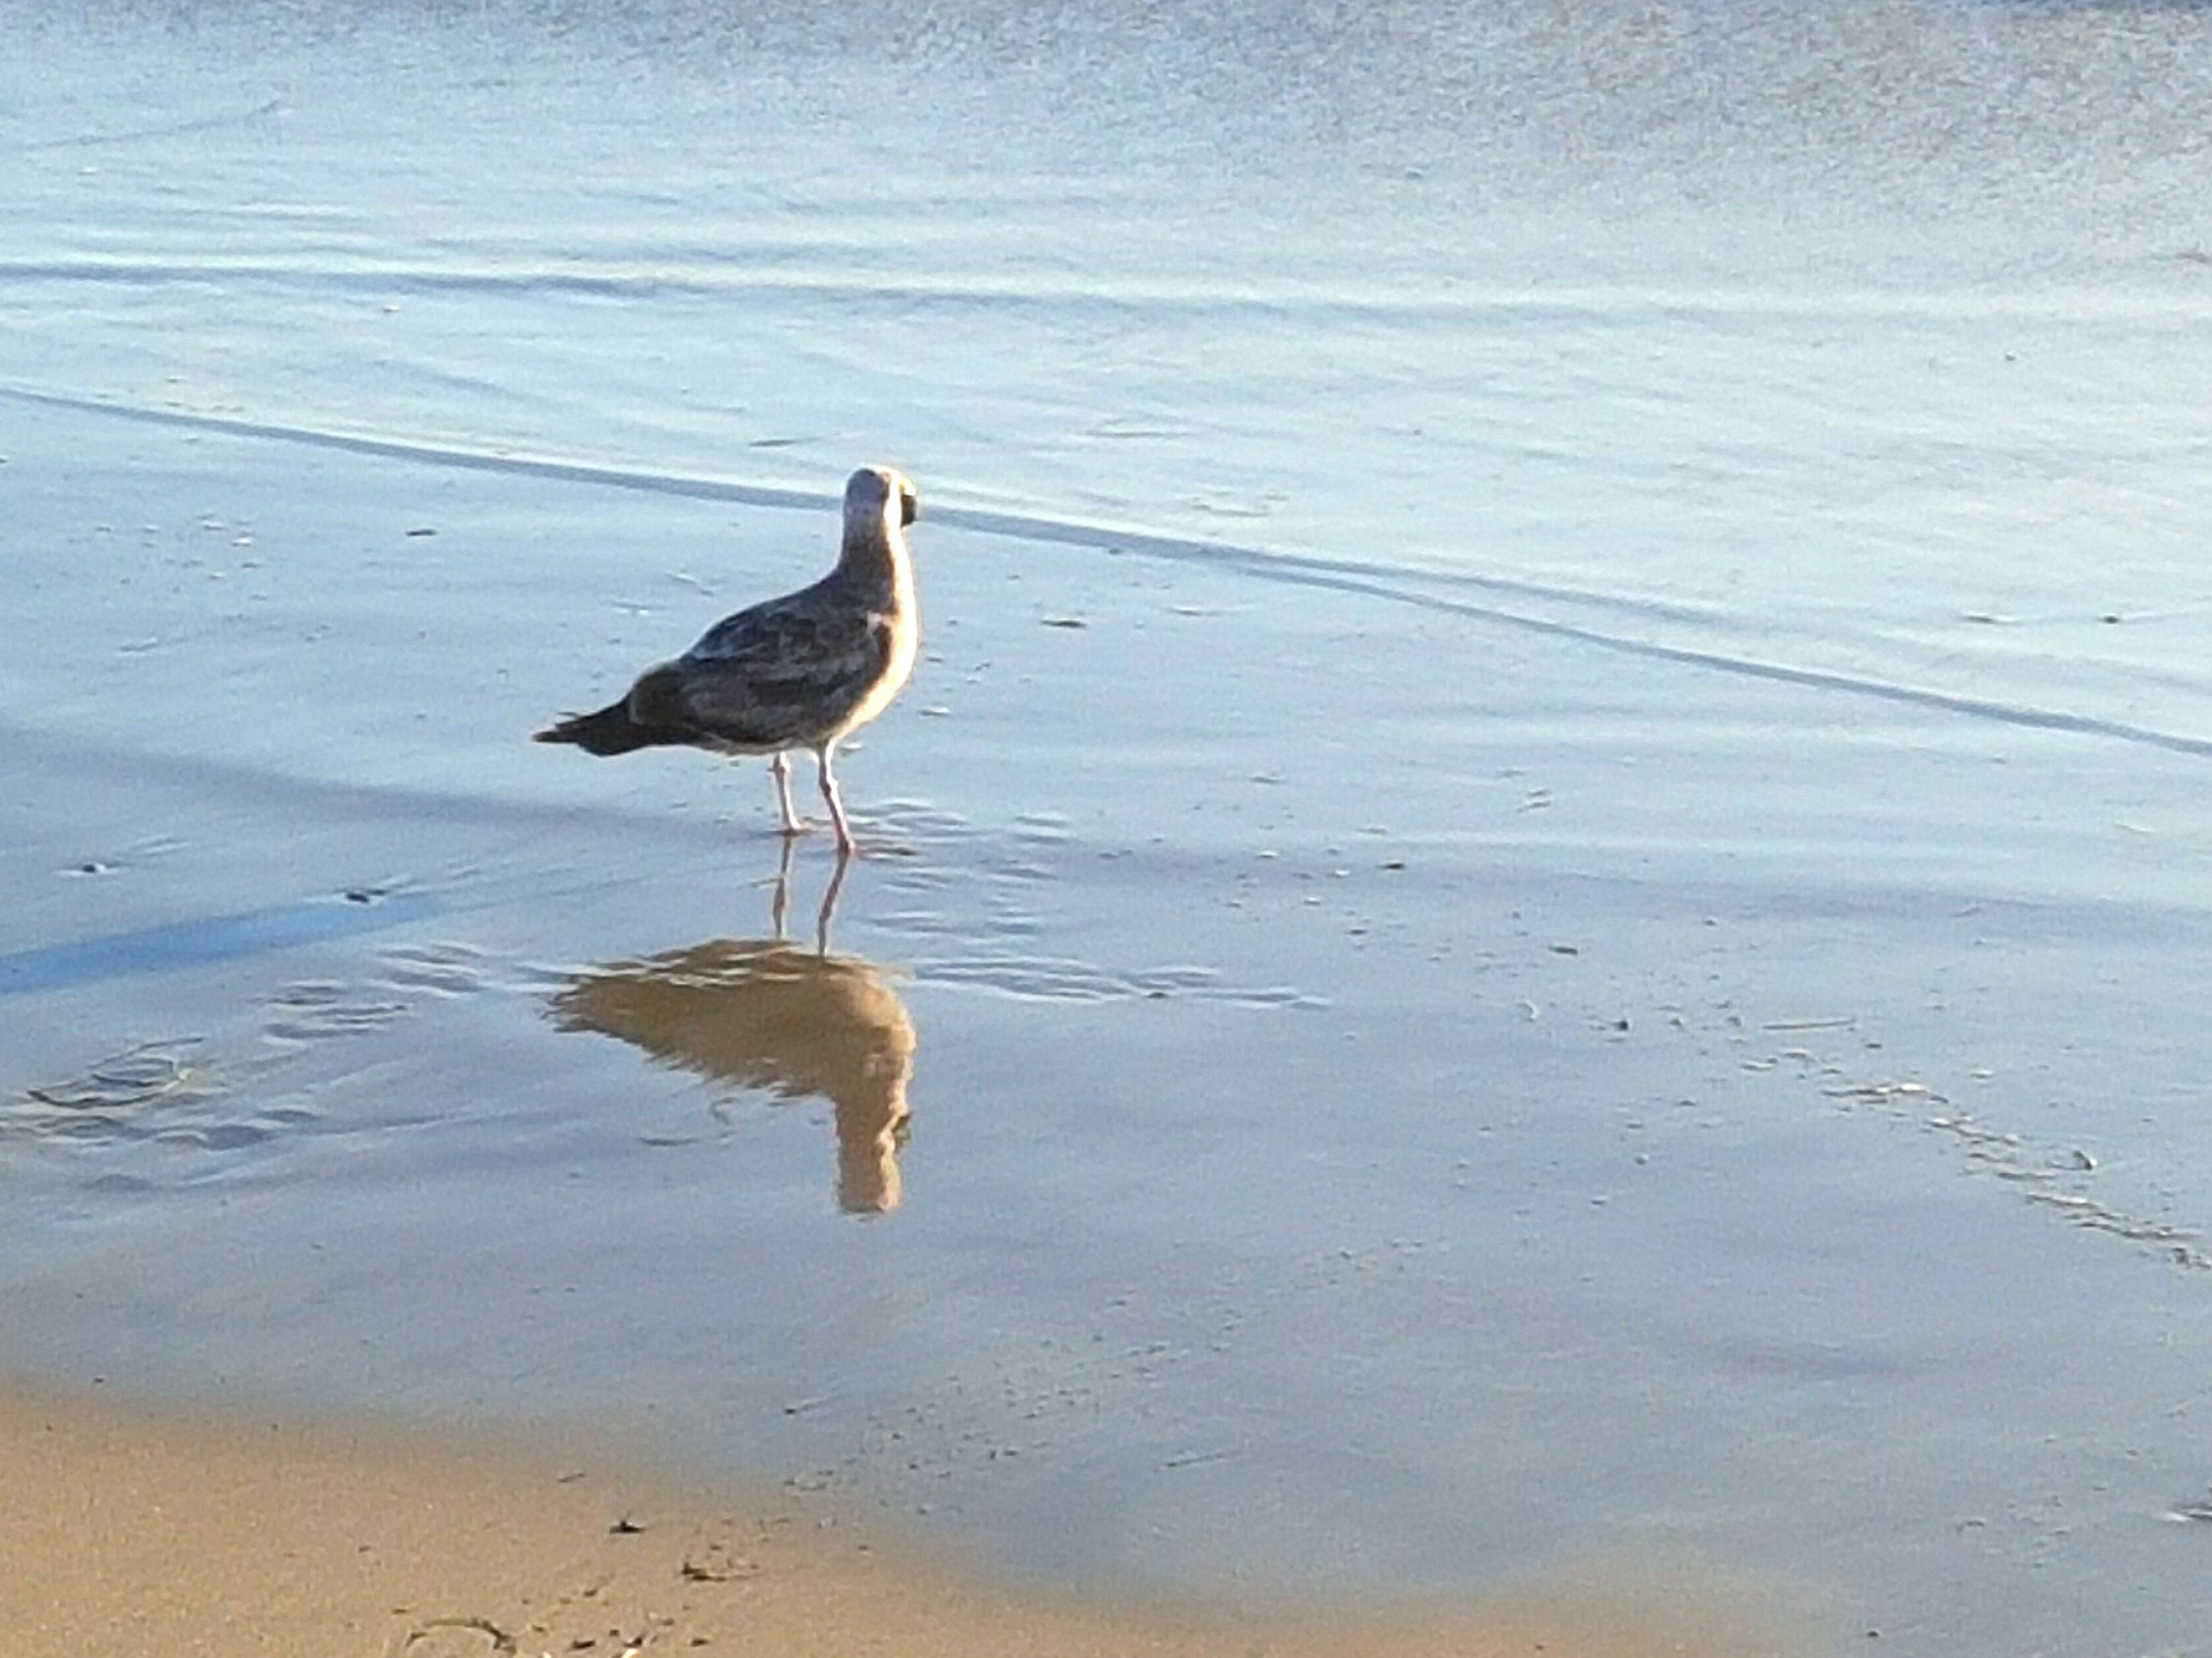 bird, animal themes, water, animals in the wild, wildlife, beach, one animal, full length, sea, shore, sand, nature, reflection, seagull, side view, beauty in nature, lake, outdoors, rippled, day